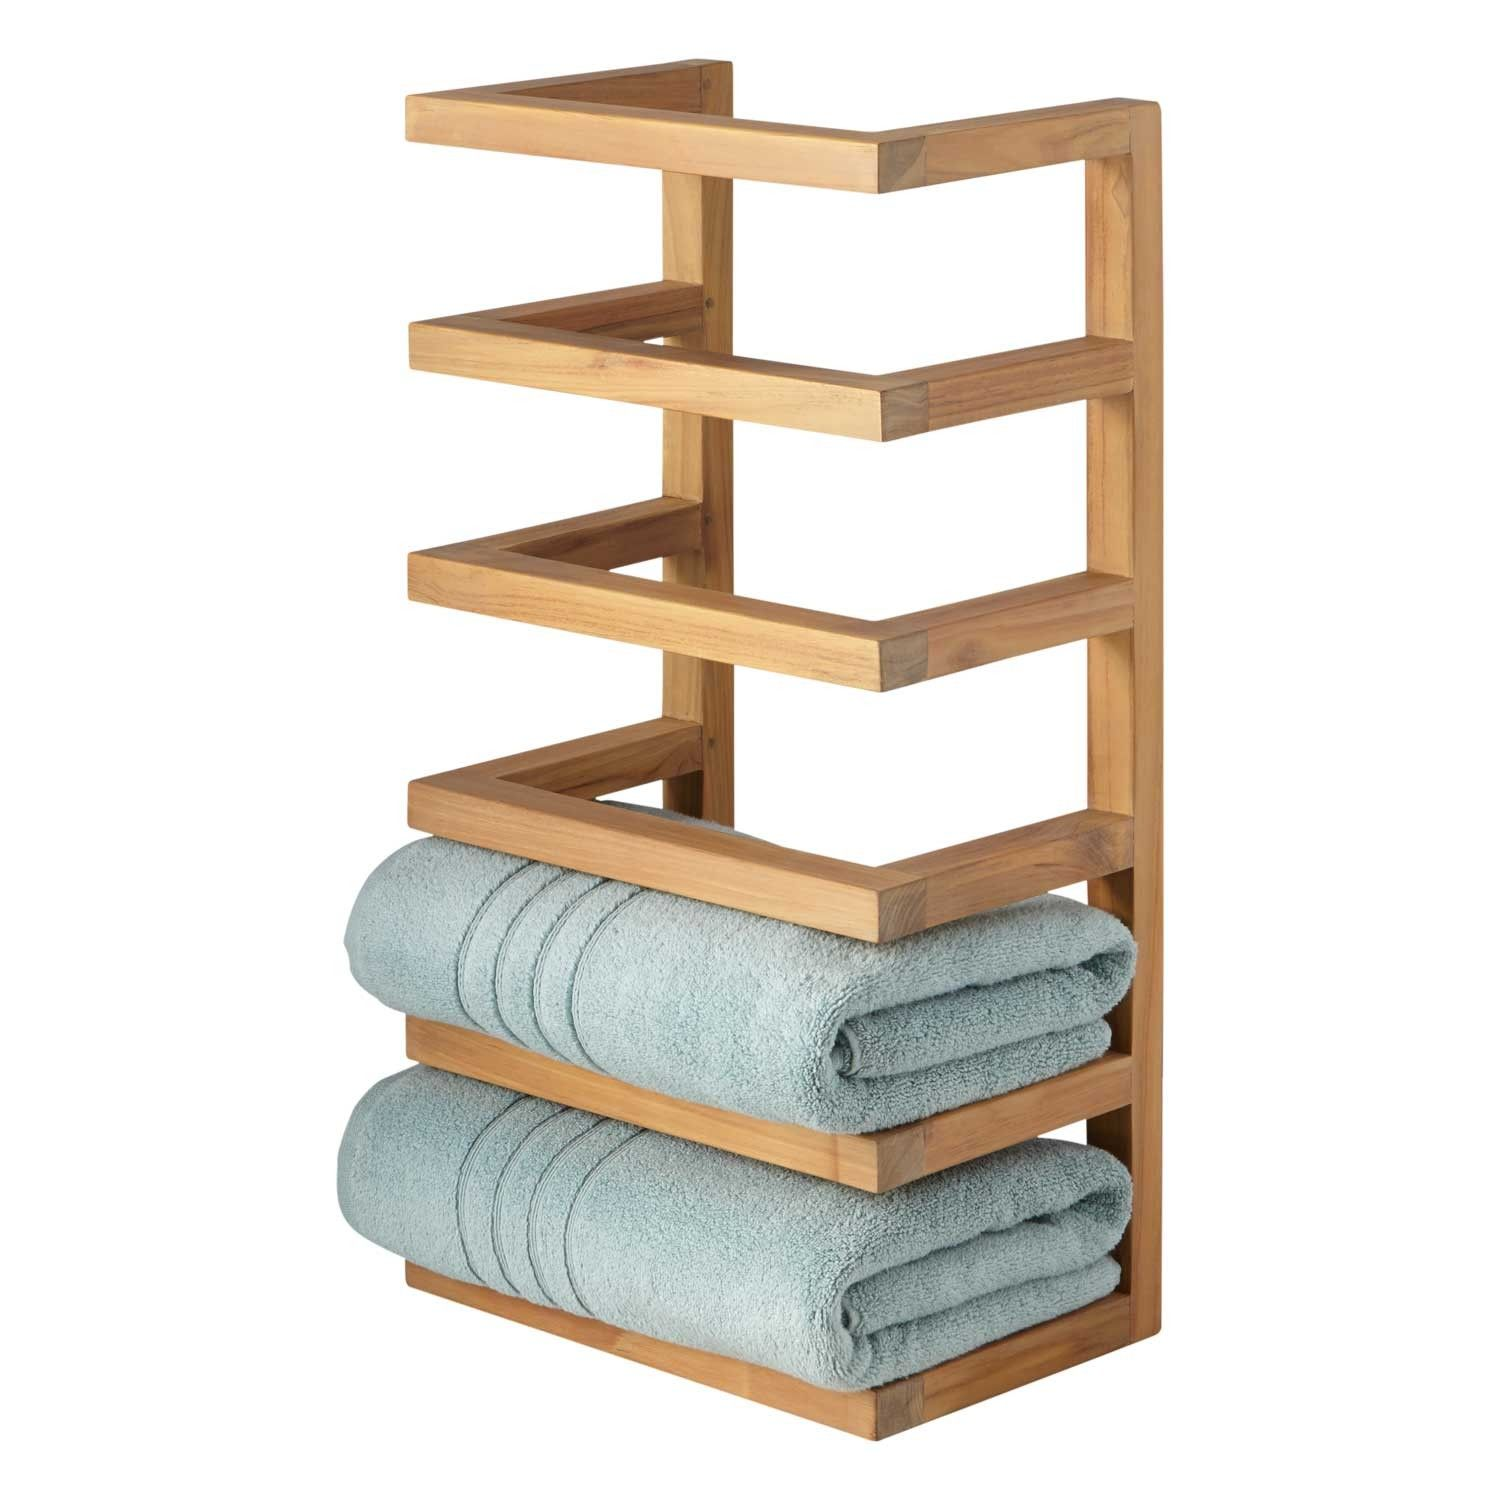 Teak Hanging Towel Rack Home Pinterest Hanging Towels Towel - Towel storage shelves for small bathroom ideas